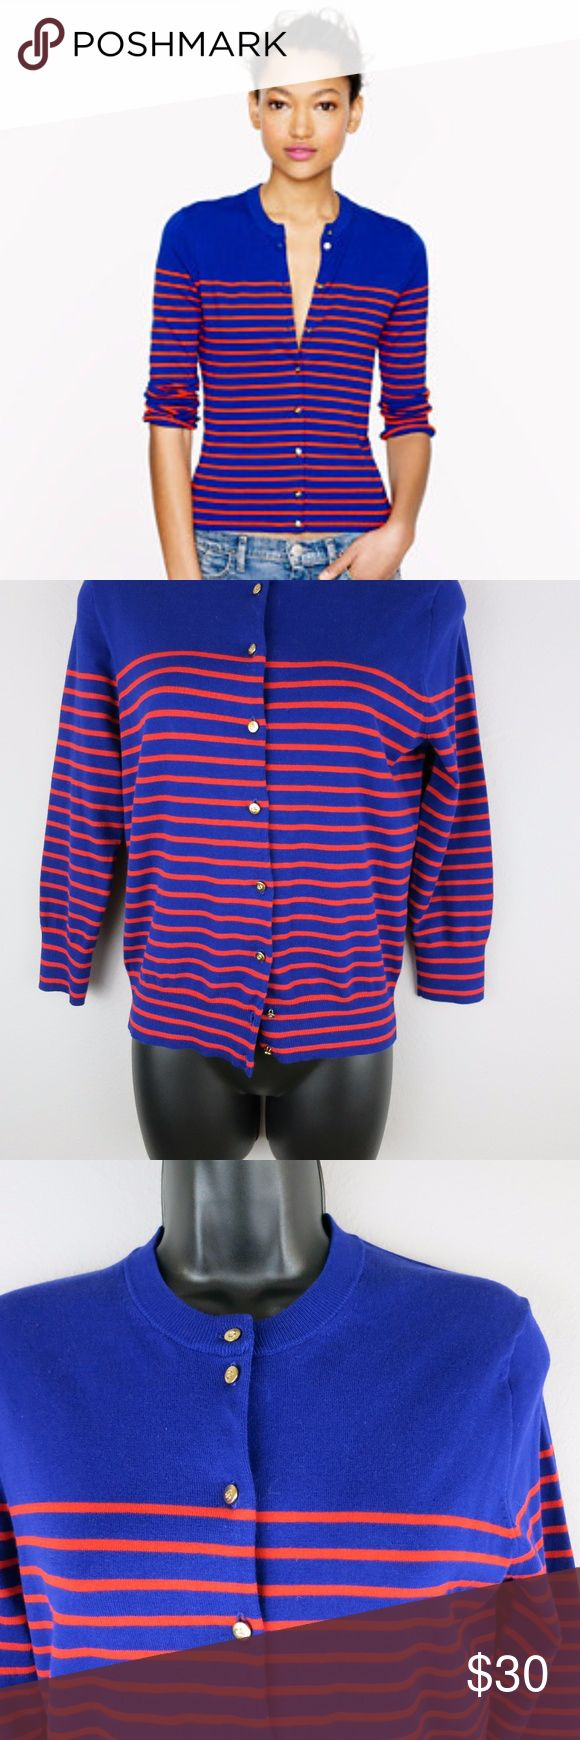 "[J. Crew] Jackie Nautical Cardigan J.CREW Jackie Cardigan Sweater Nautical Stripes Blue Orange MEDIUM $72  Gently used  Please see photos for all details Length - 22"" Sleeve length - 18.5"" Bust (armpit to armpit) - 17.5"" J. Crew Sweaters Cardigans"